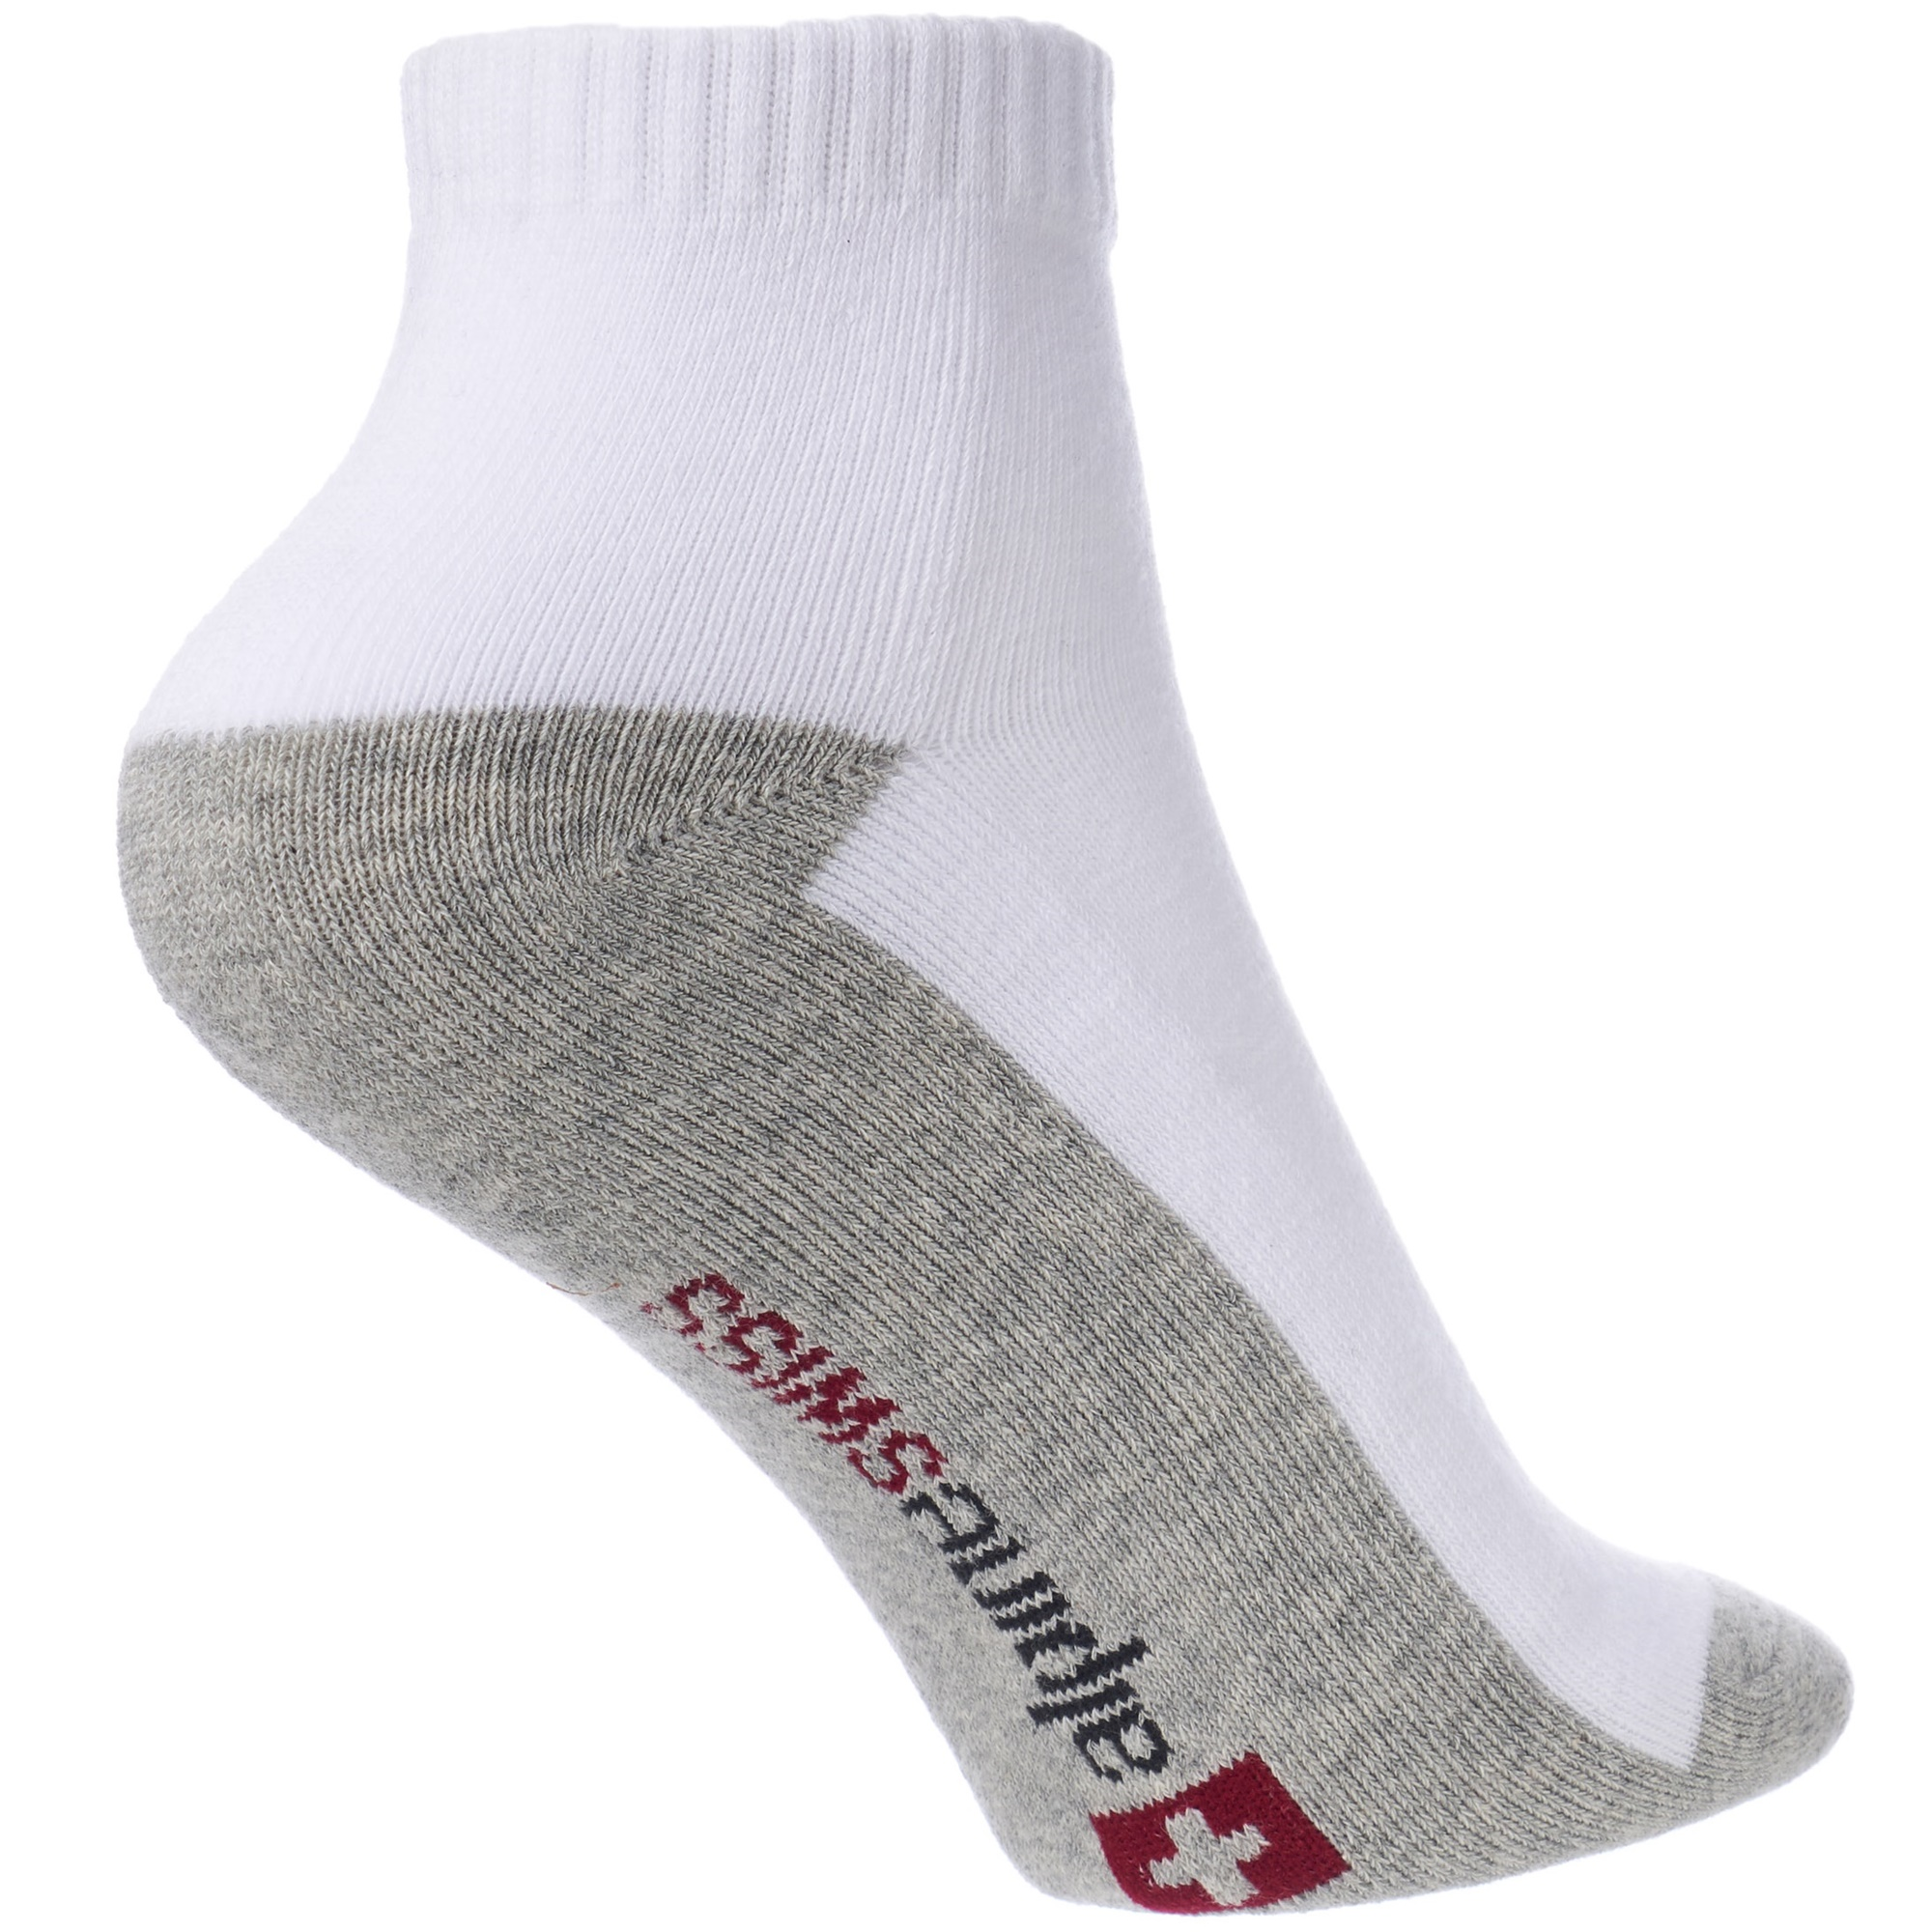 Alpine-Swiss-Mens-8-Pack-Ankle-Socks-Low-Cut-Cotton-Athletic-Sock-Shoe-Size-6-12 thumbnail 29